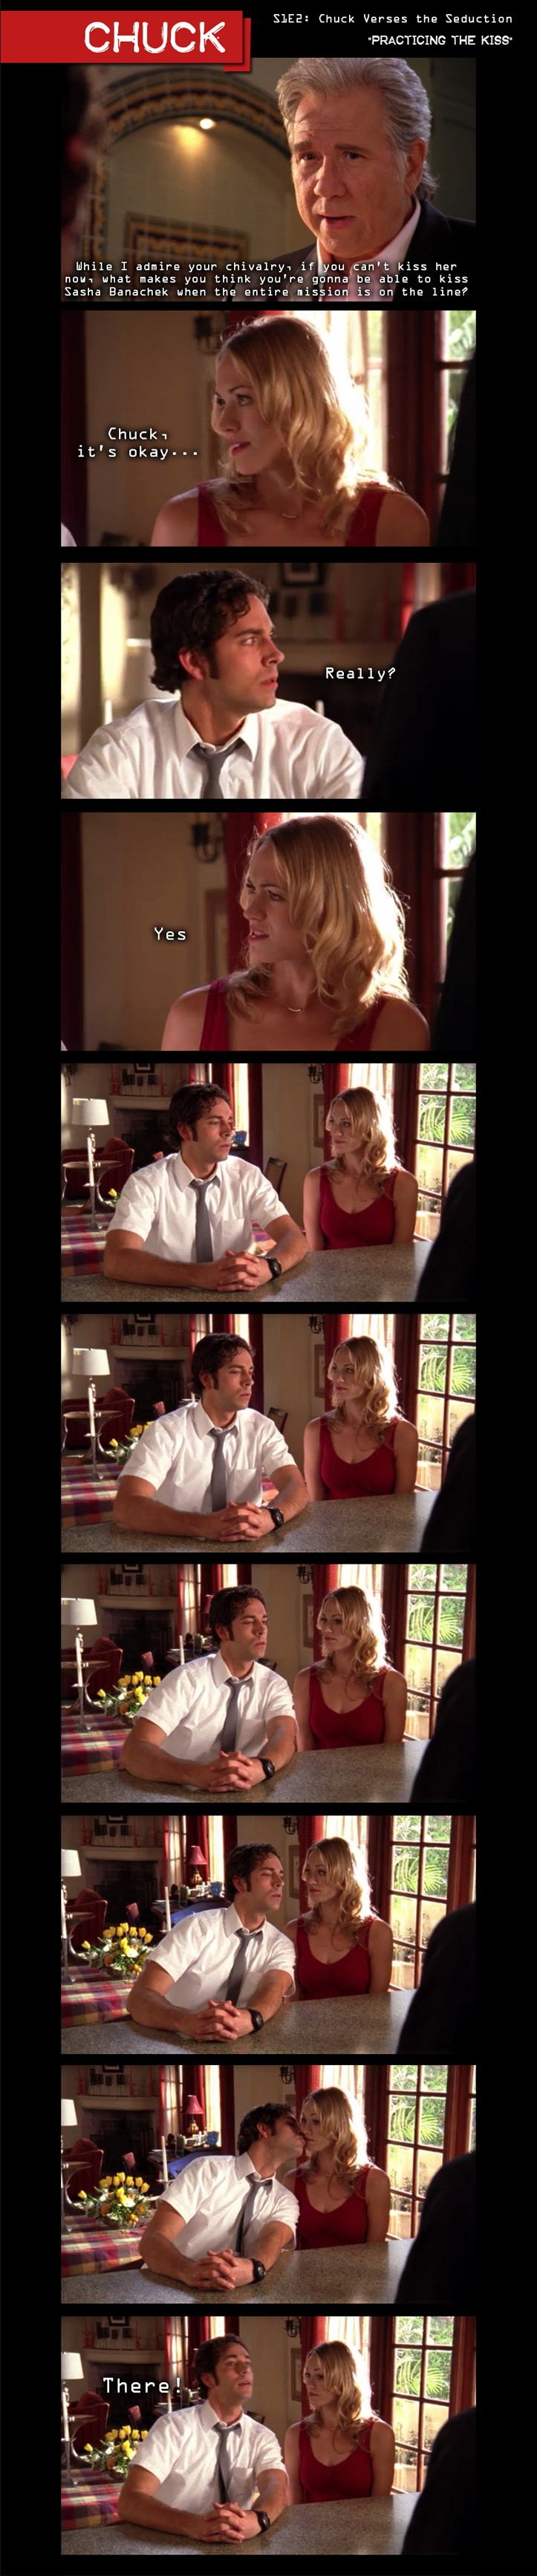 "Chuck: Season 2, Episode 2 ""Chuck Verses the Seduction"". Practicing the kiss...!"